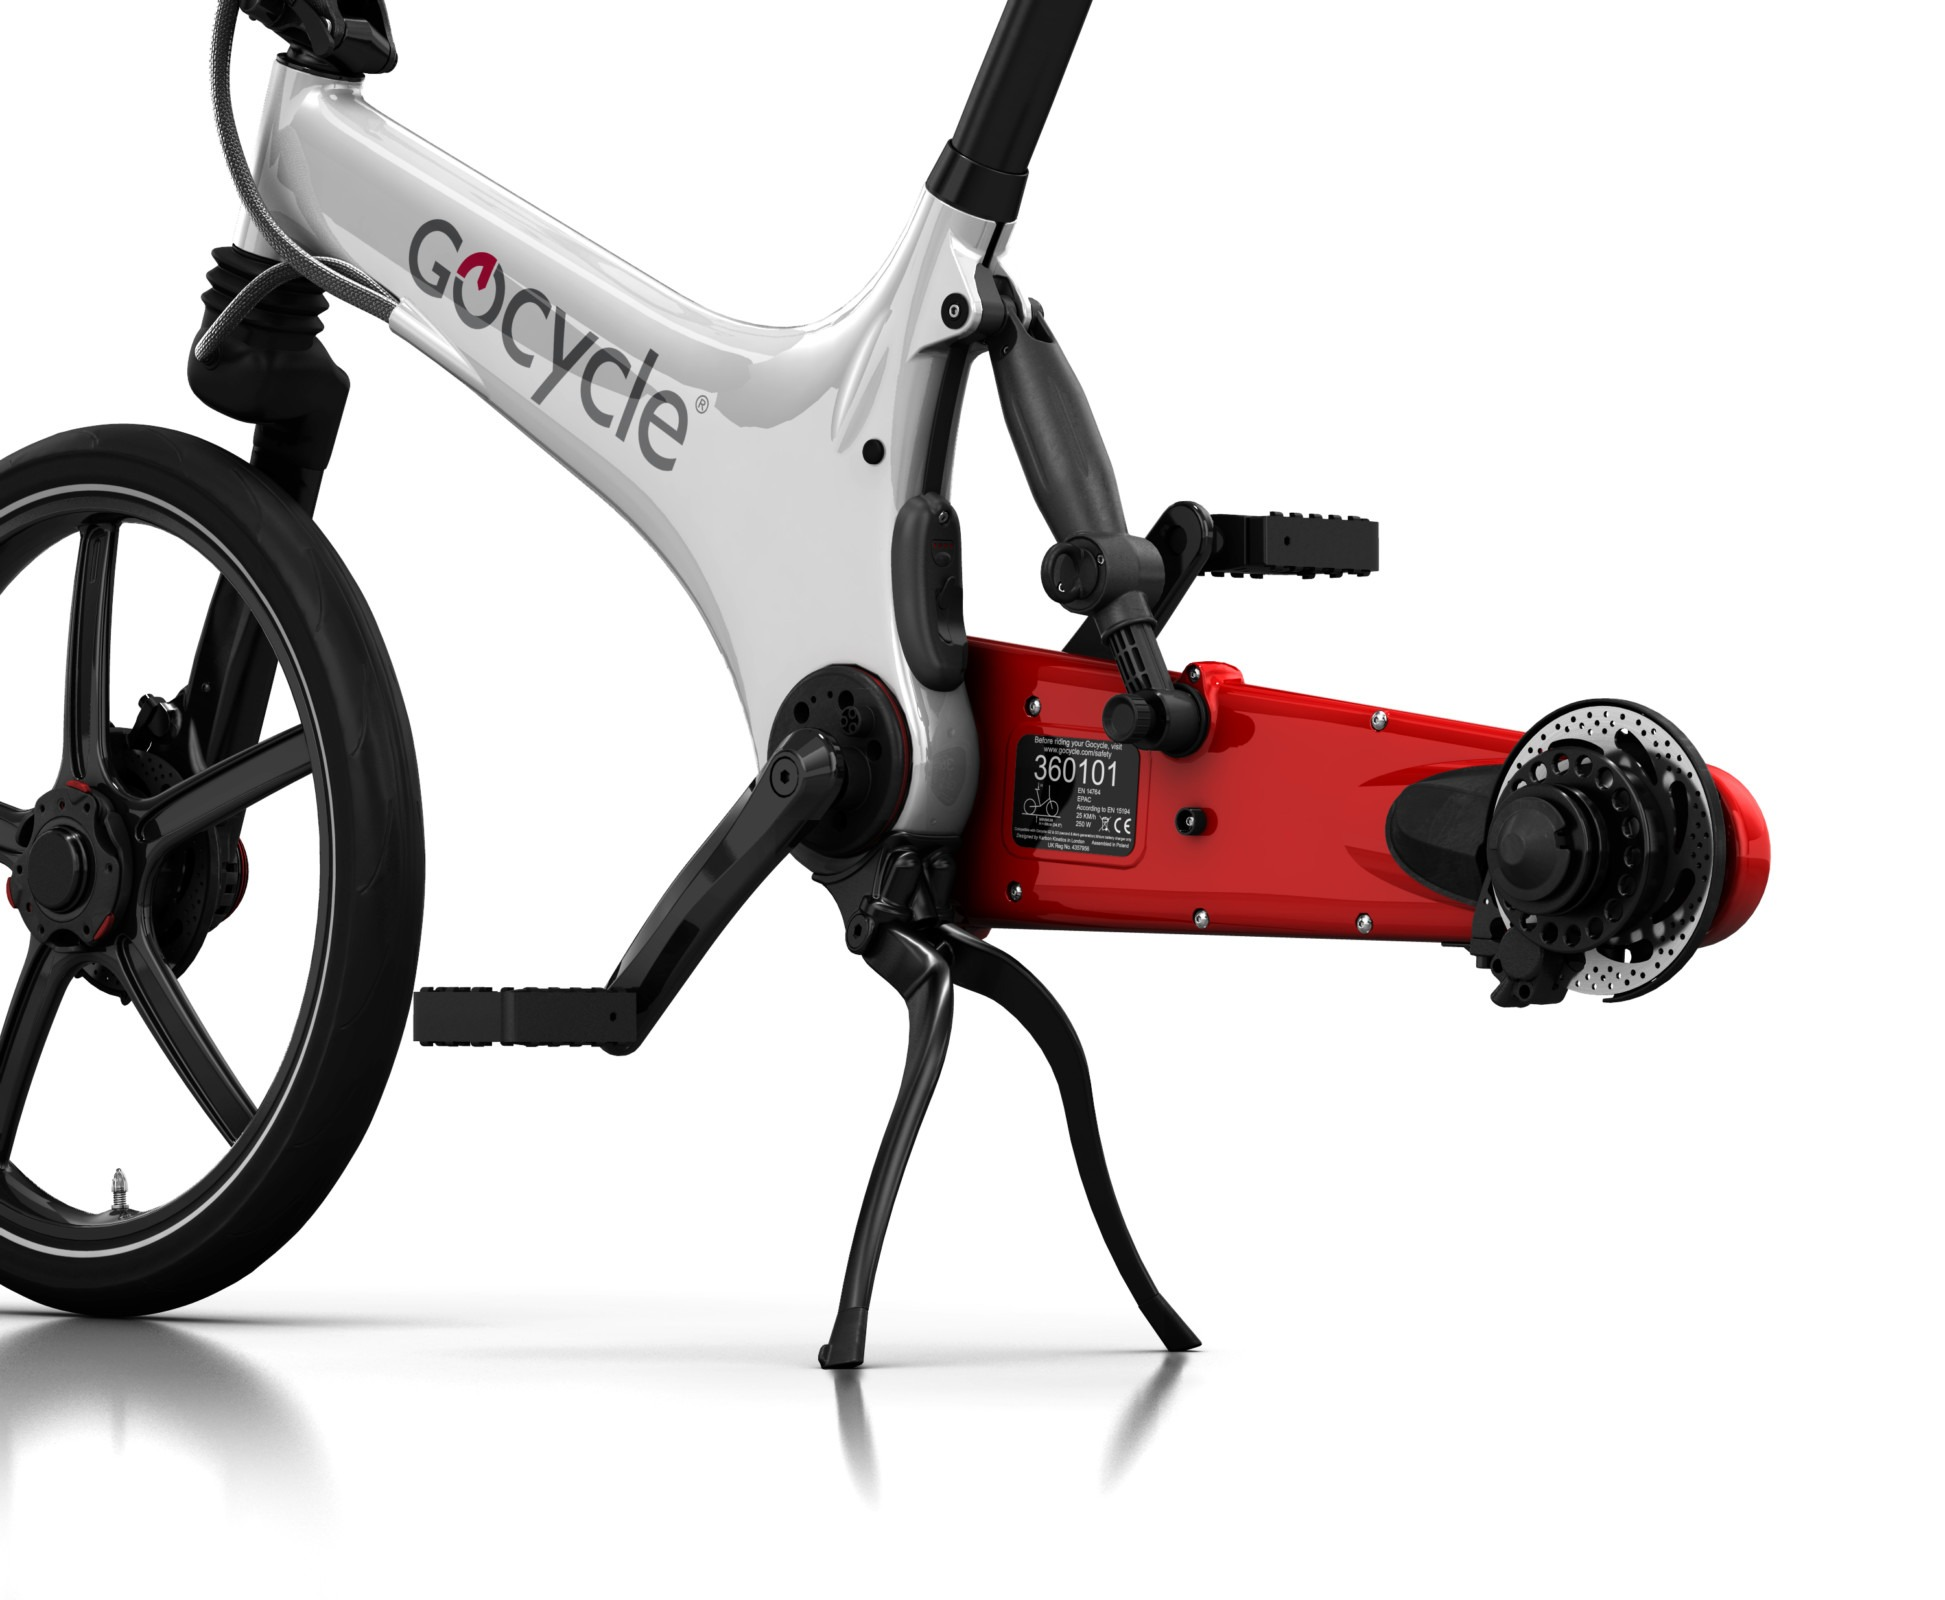 Gocycle G3 Kickstand inovativna tačka